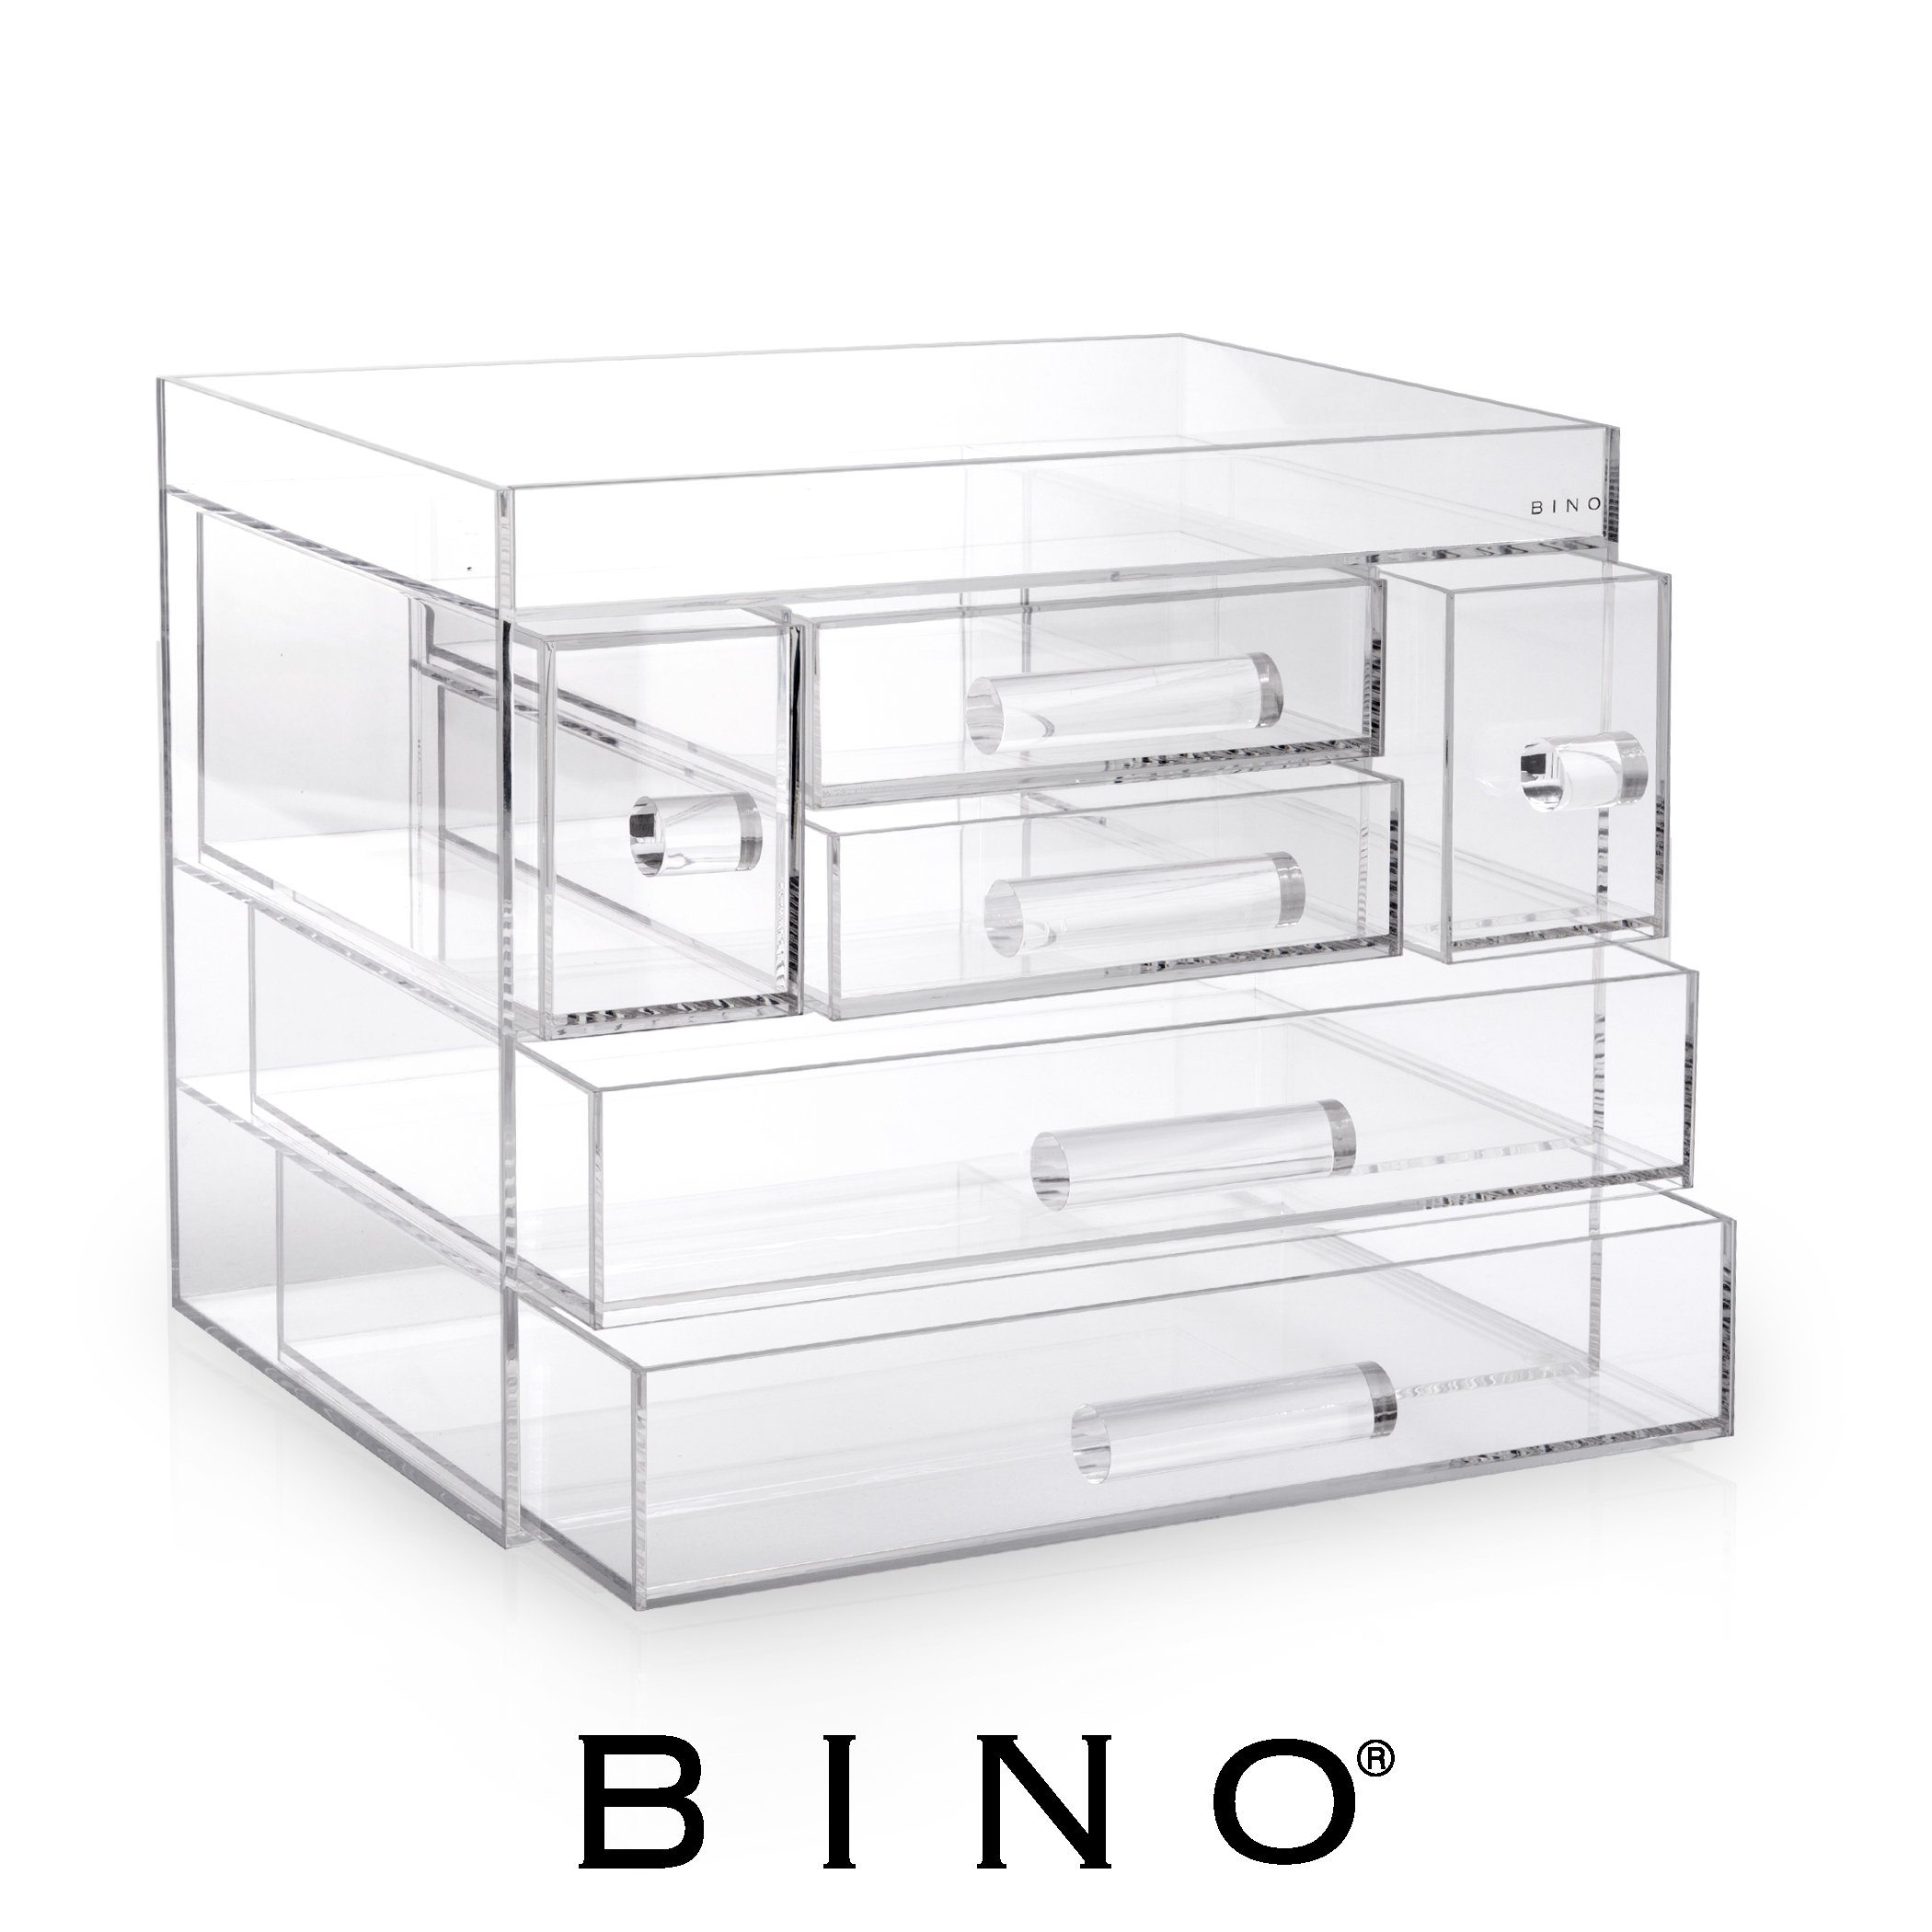 BINO Acrylic Jewelry and Makeup Chest Organizer with 6 Removable Drawers - Clear and Transparent Big 5-Tier Cosmetic Storage Display Box Case